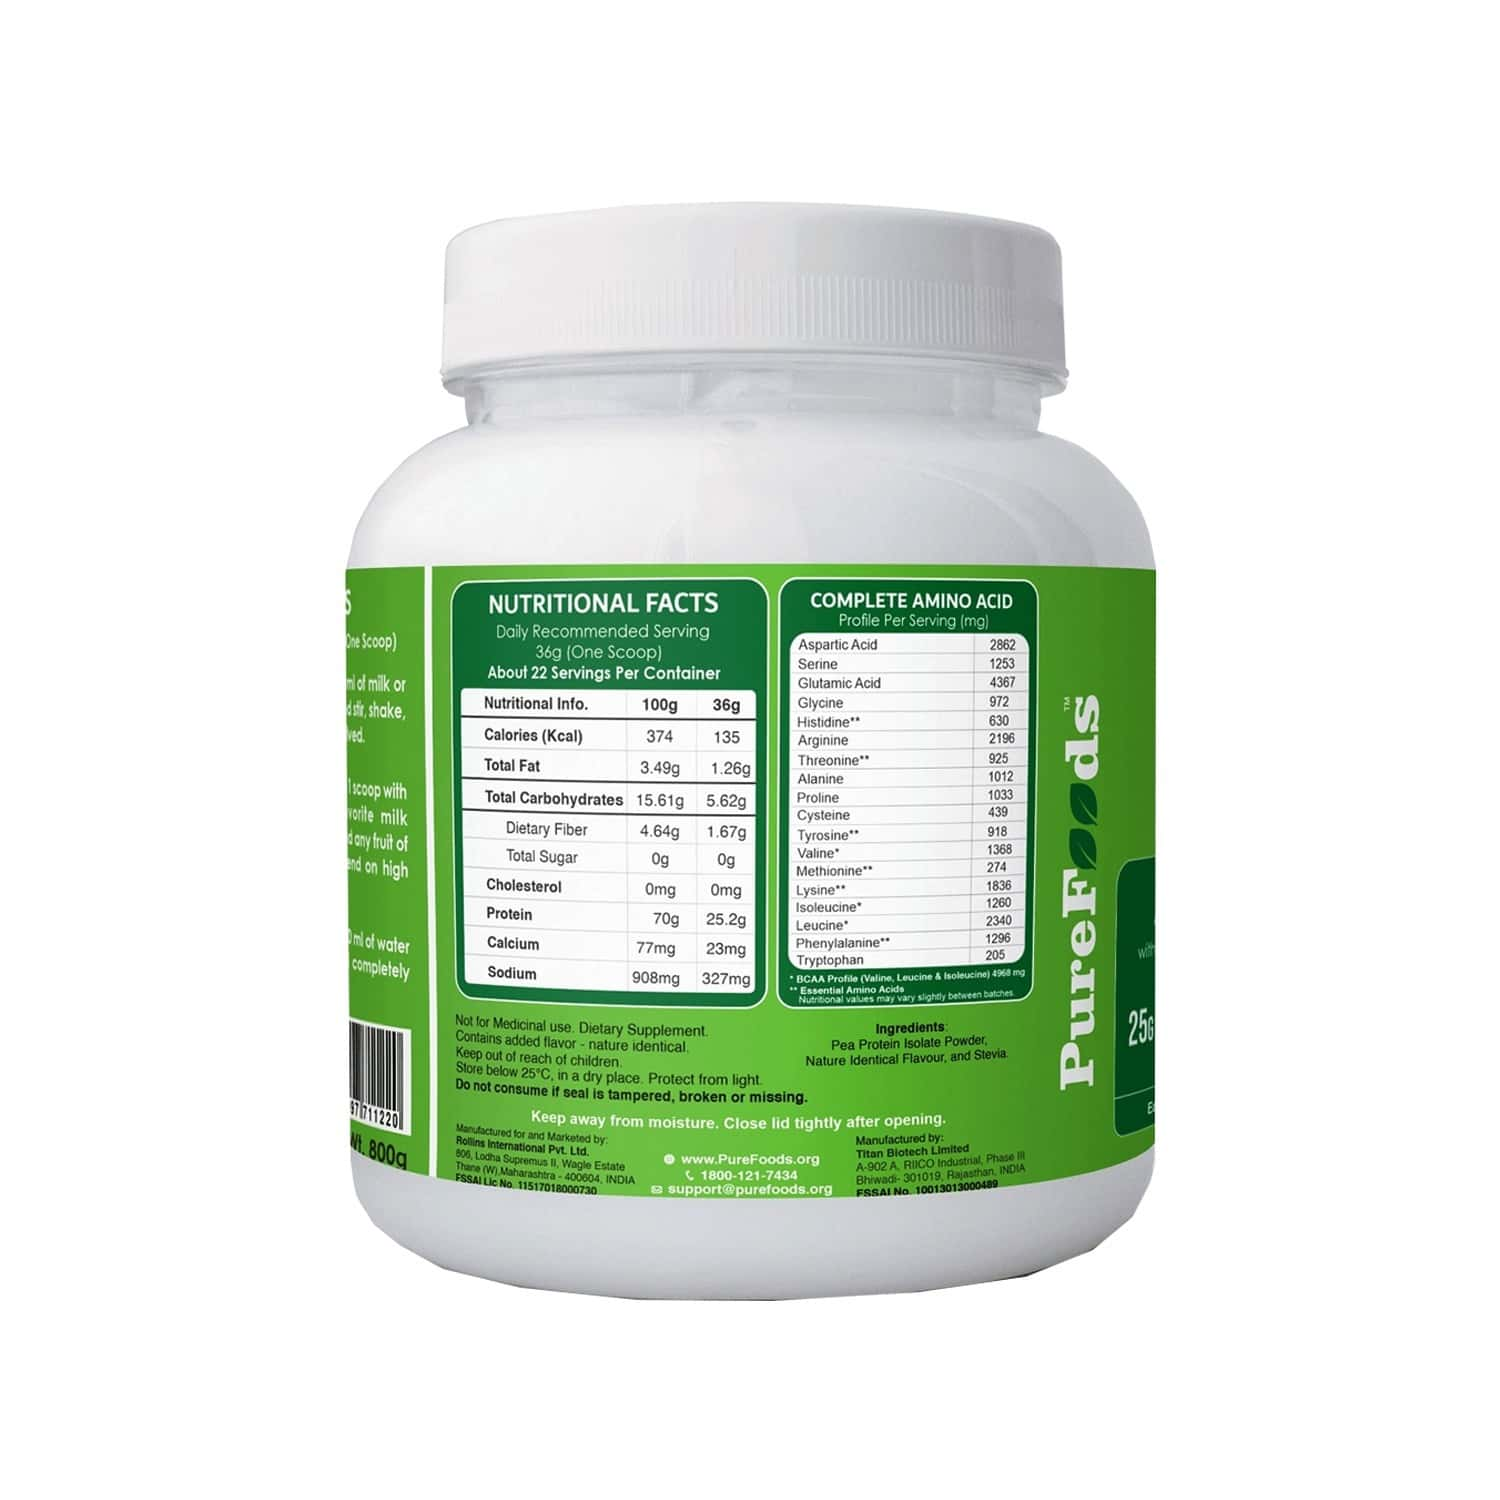 Purefoods Pf Pea Protein Banana Flavour - 800g